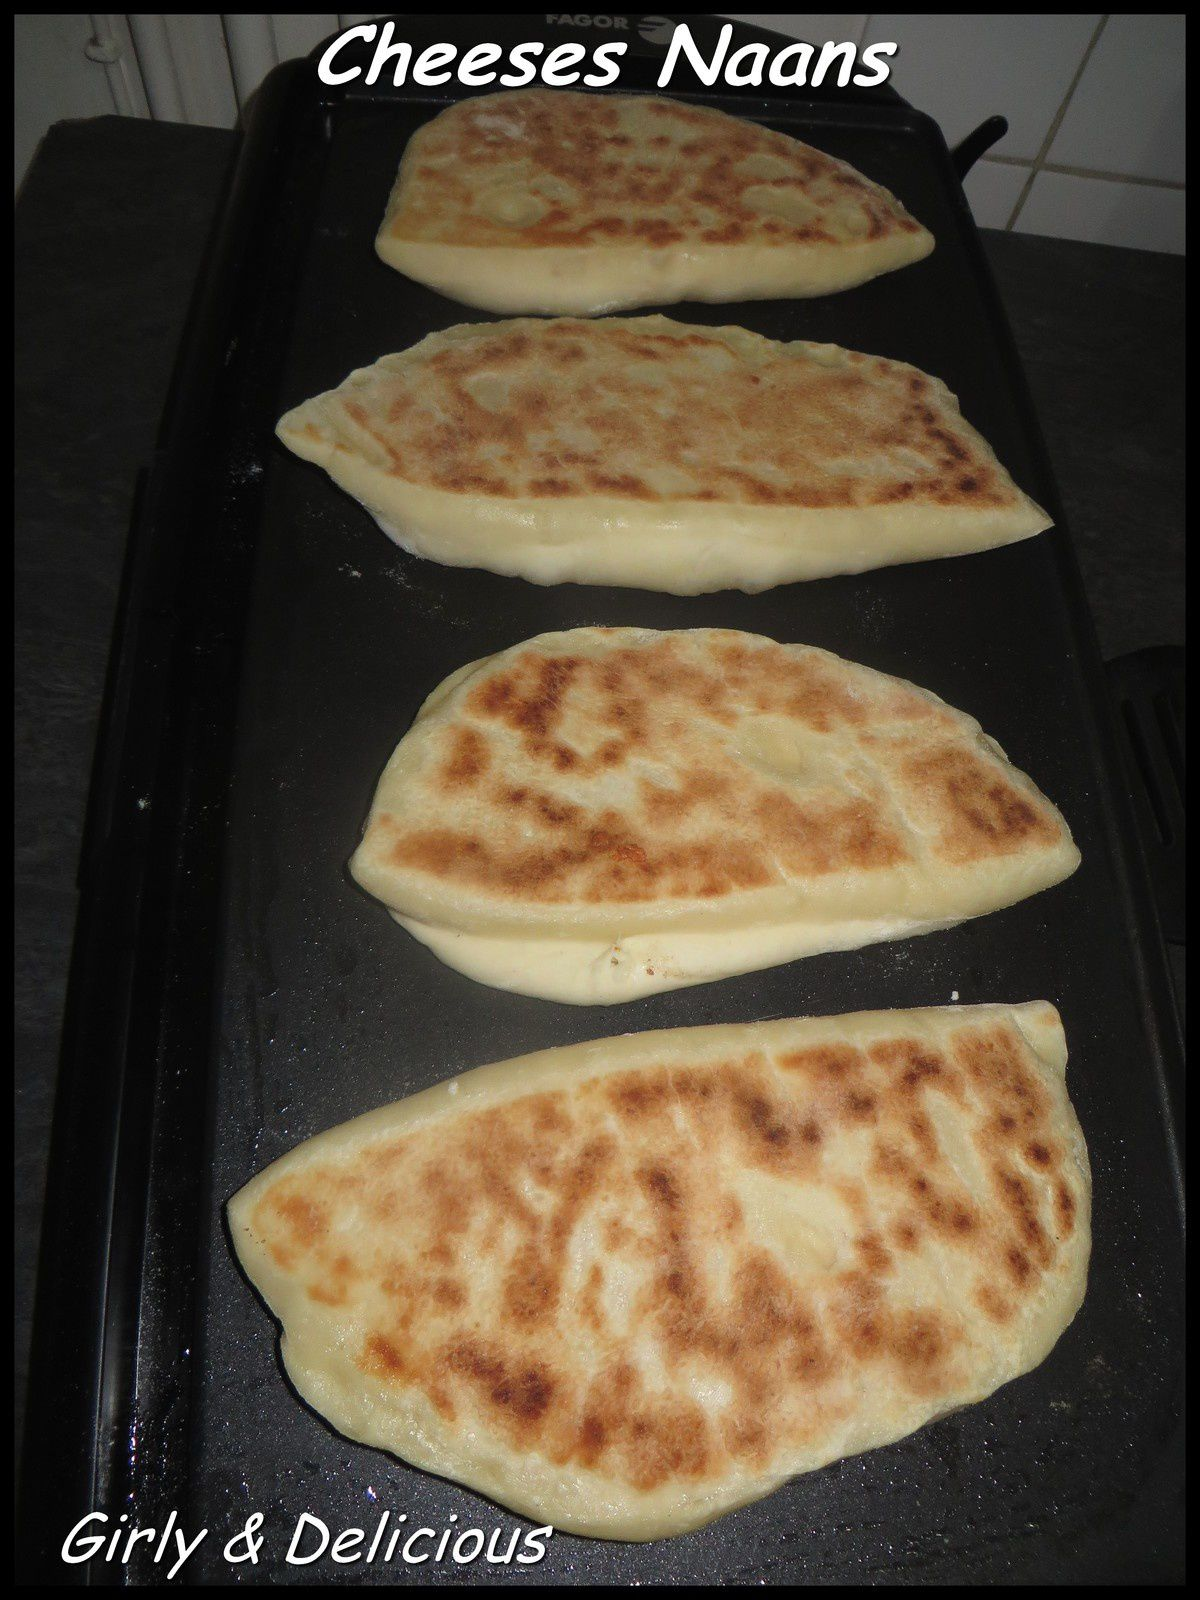 Cheeses naans